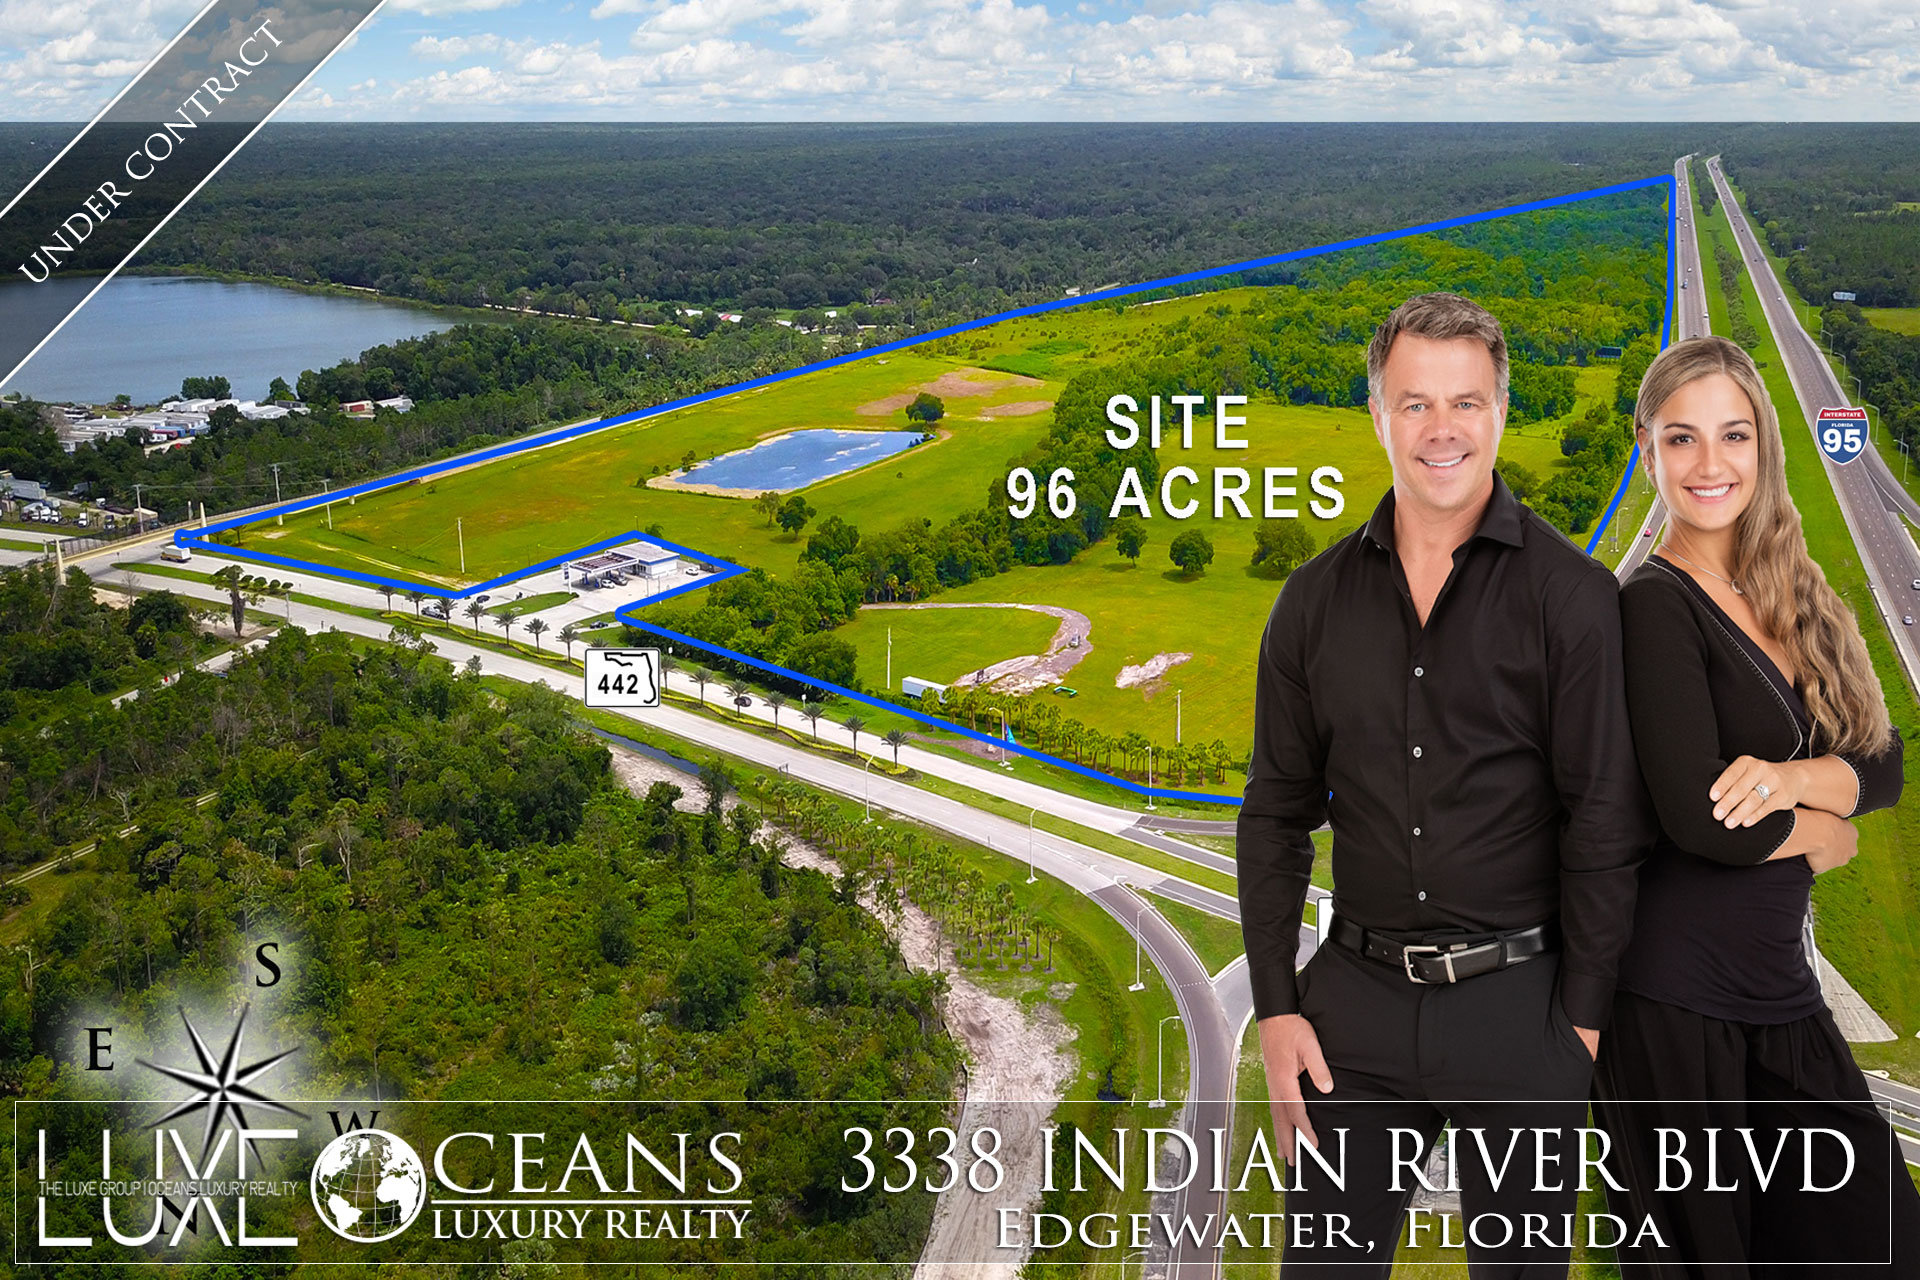 Commercial Land Mix Use PUD For Sale. Now Under Contract -  3338 Indian River Blvd, Edgewater, FL